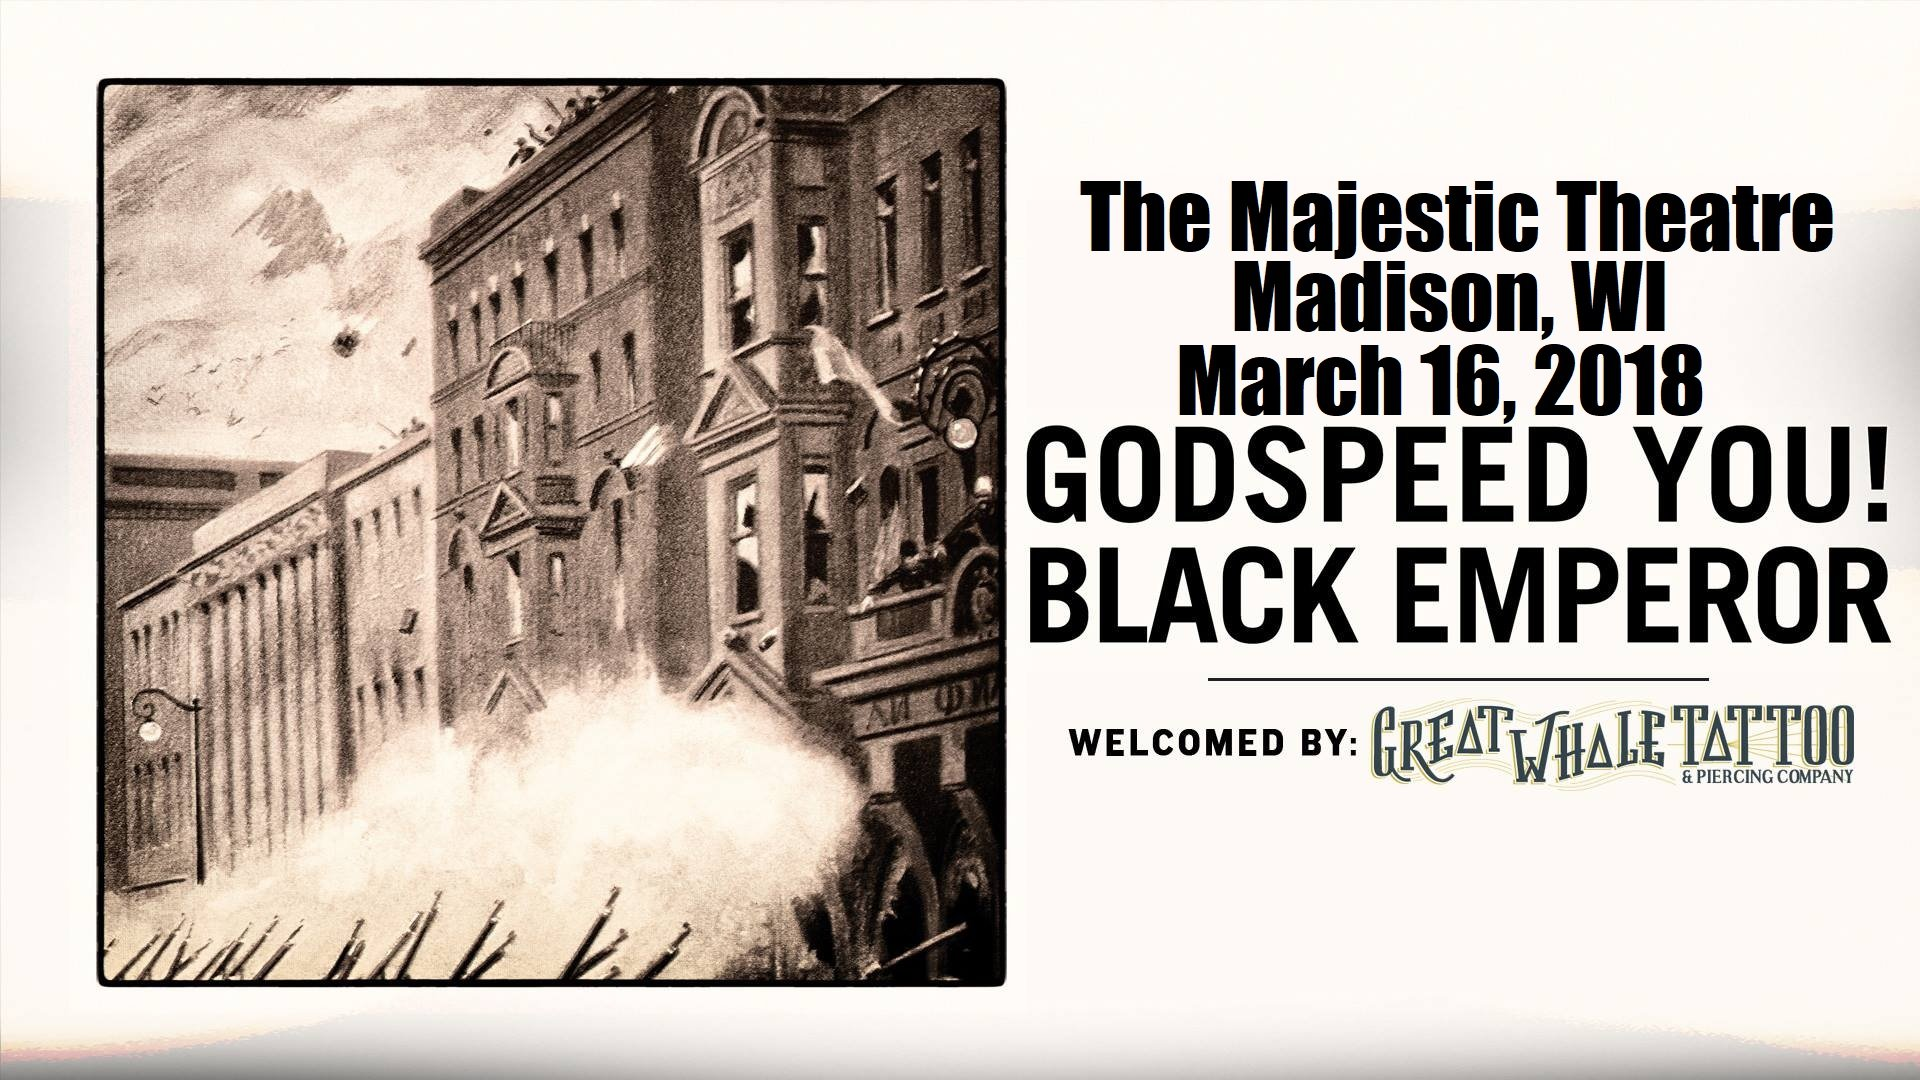 Godspeed You Black Emperor At Majestic Theatre Madison On 16